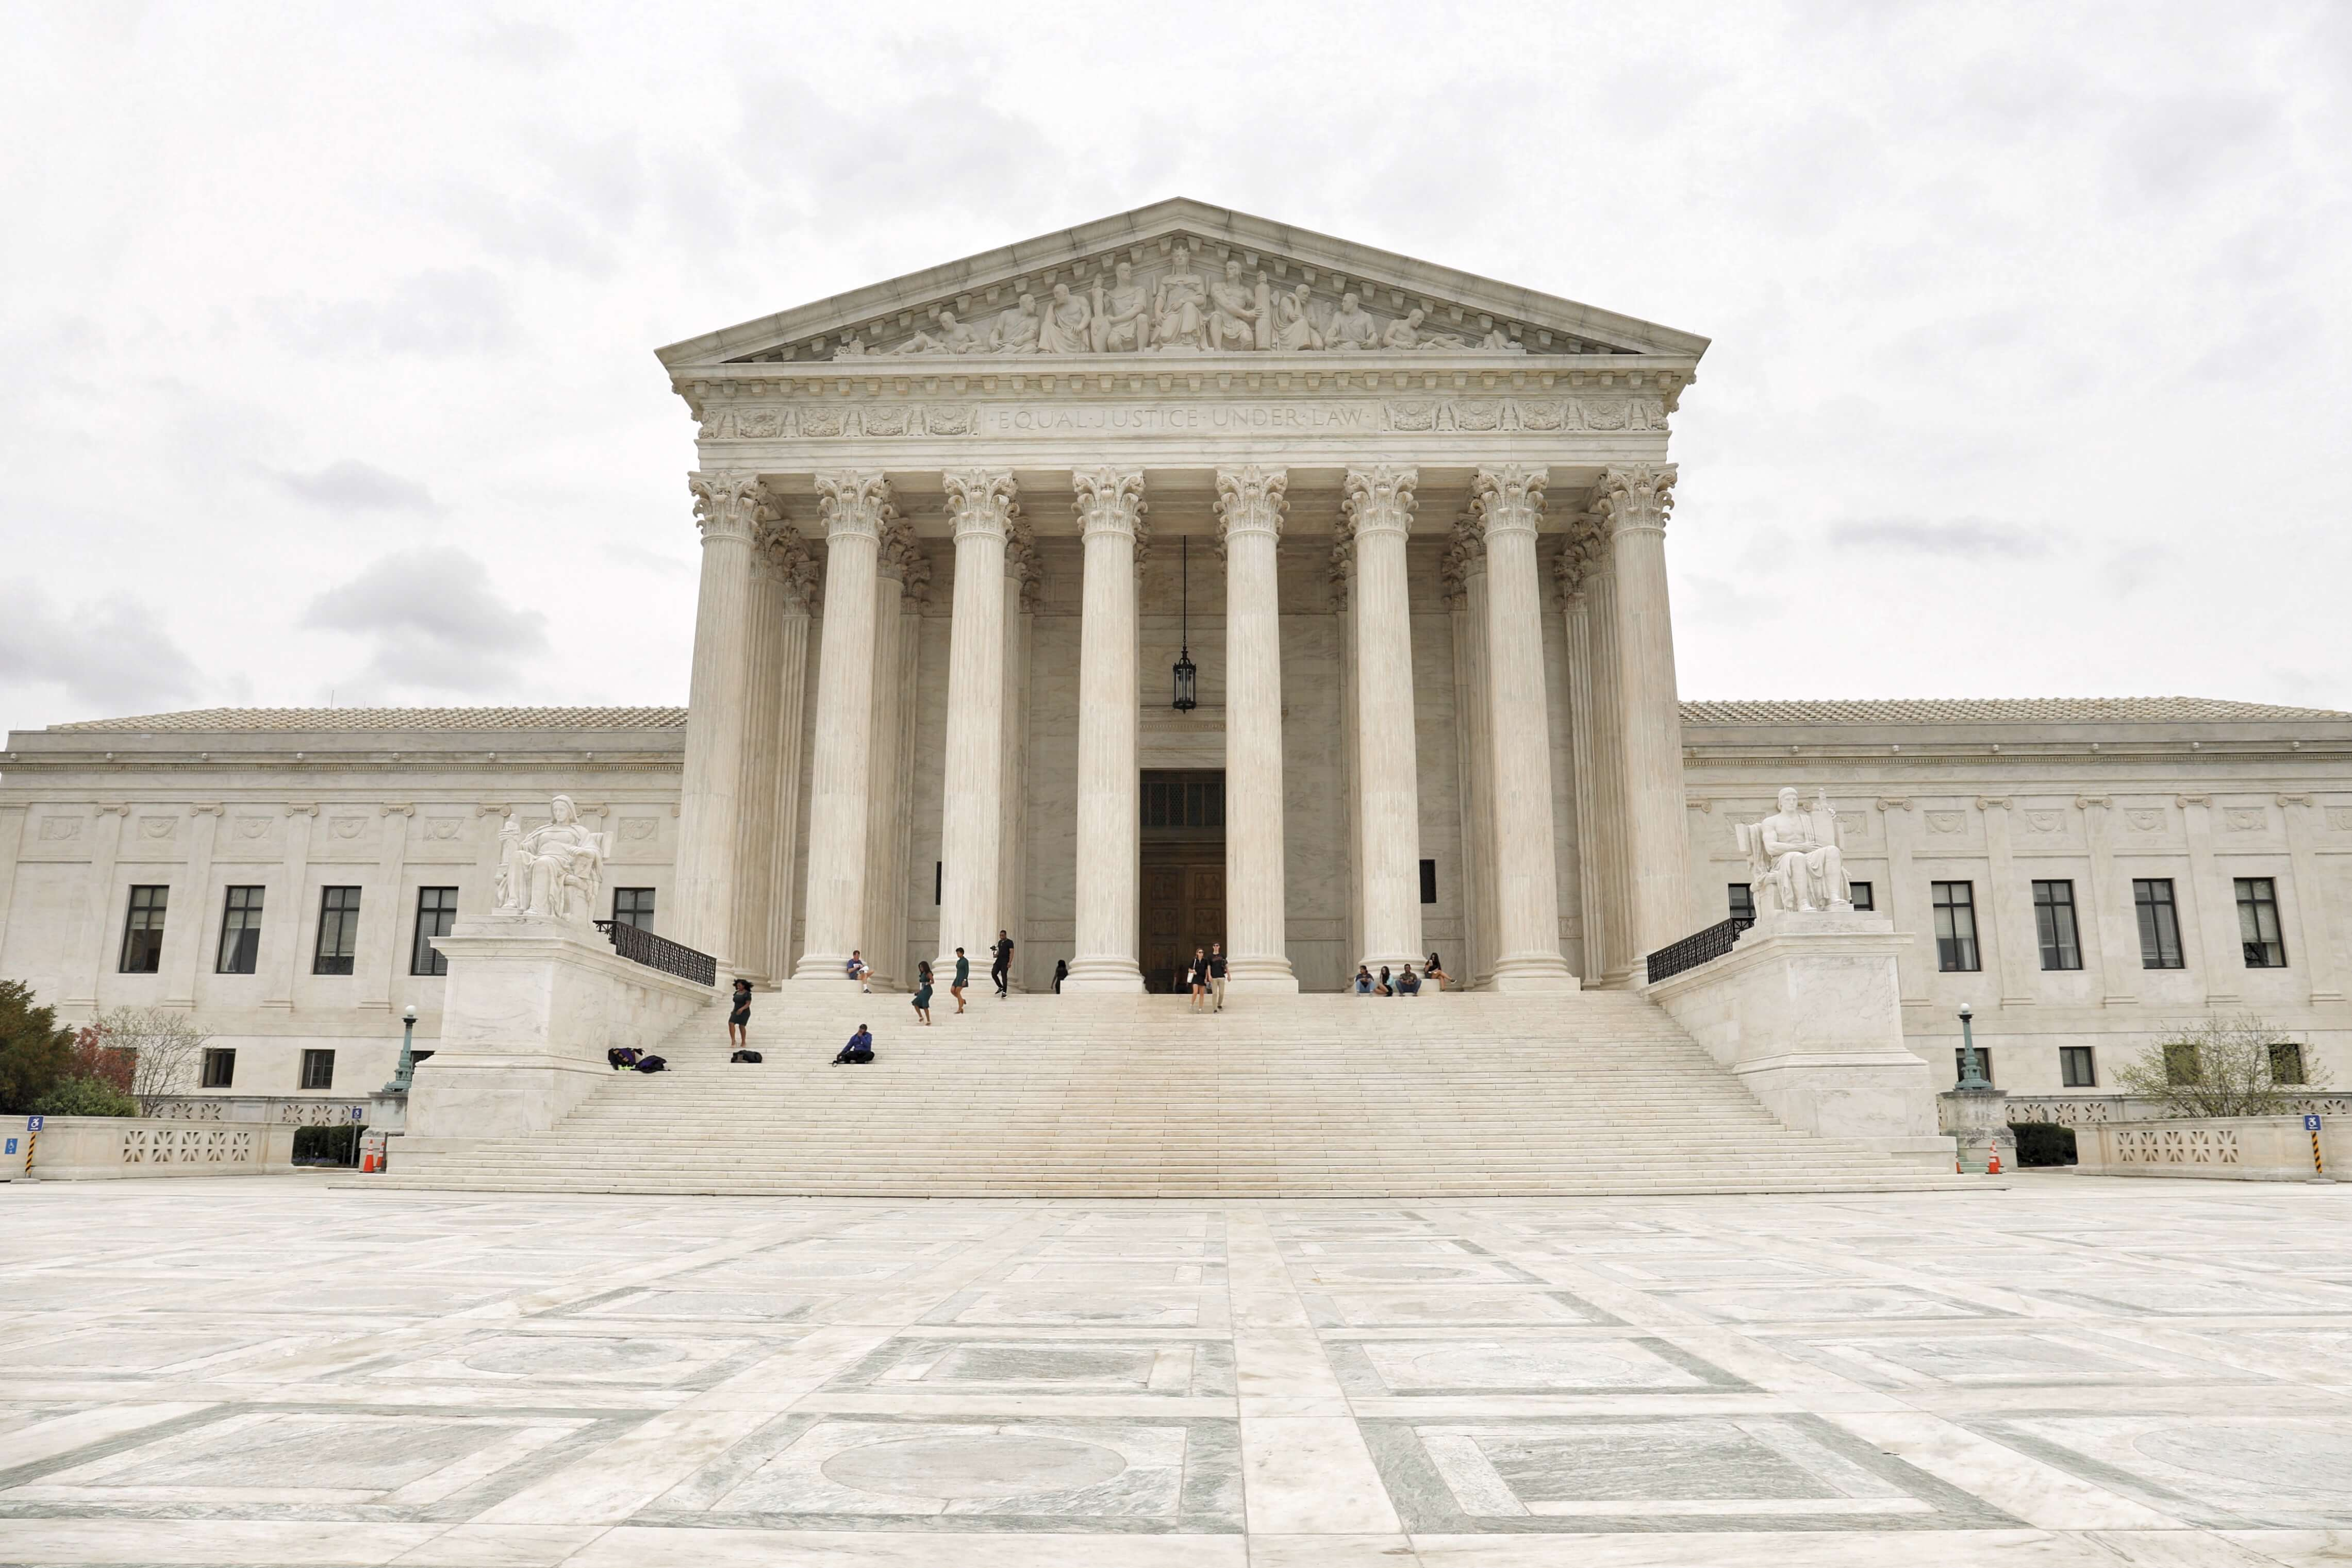 Image of U.S. Supreme Court.